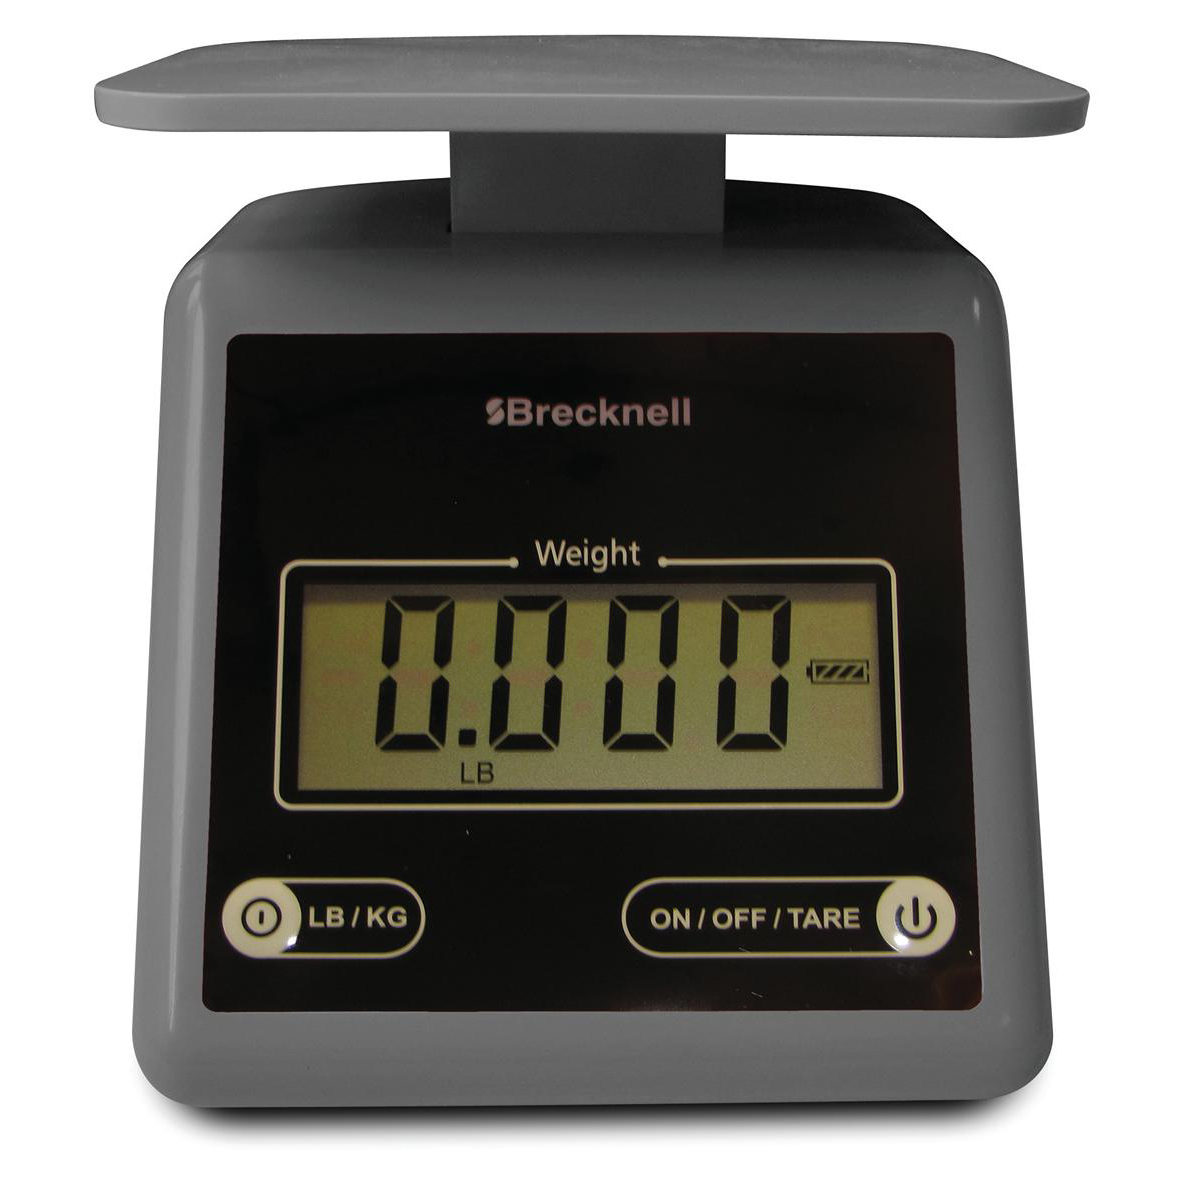 Postal scales Brecknell PS-7 Compact Postal Scale LCD Display Grey Ref 816965005222